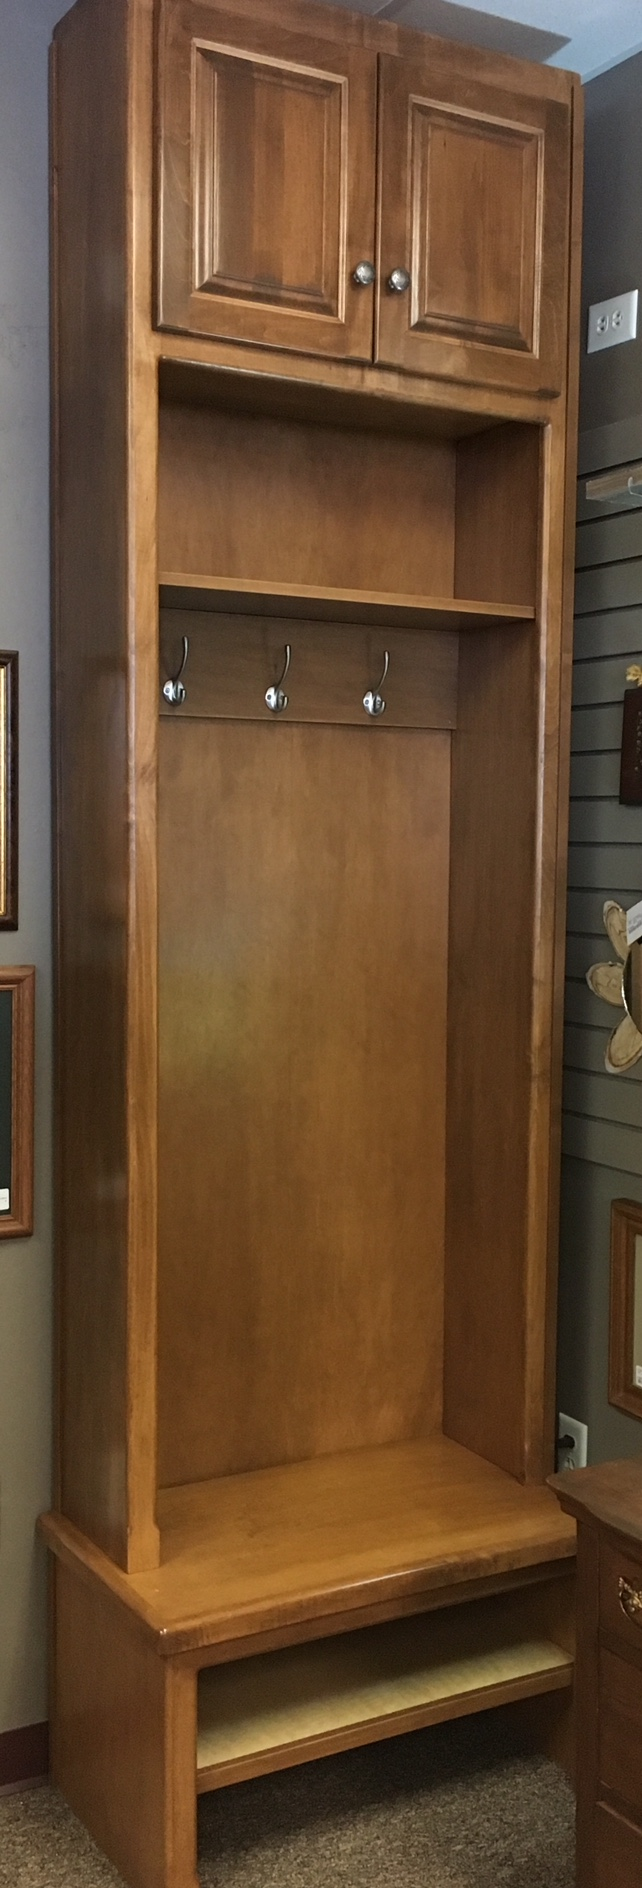 Custom built entry way cabinet.  Perfect for storing hats, mittens and boots.  Several hooks for your coats.